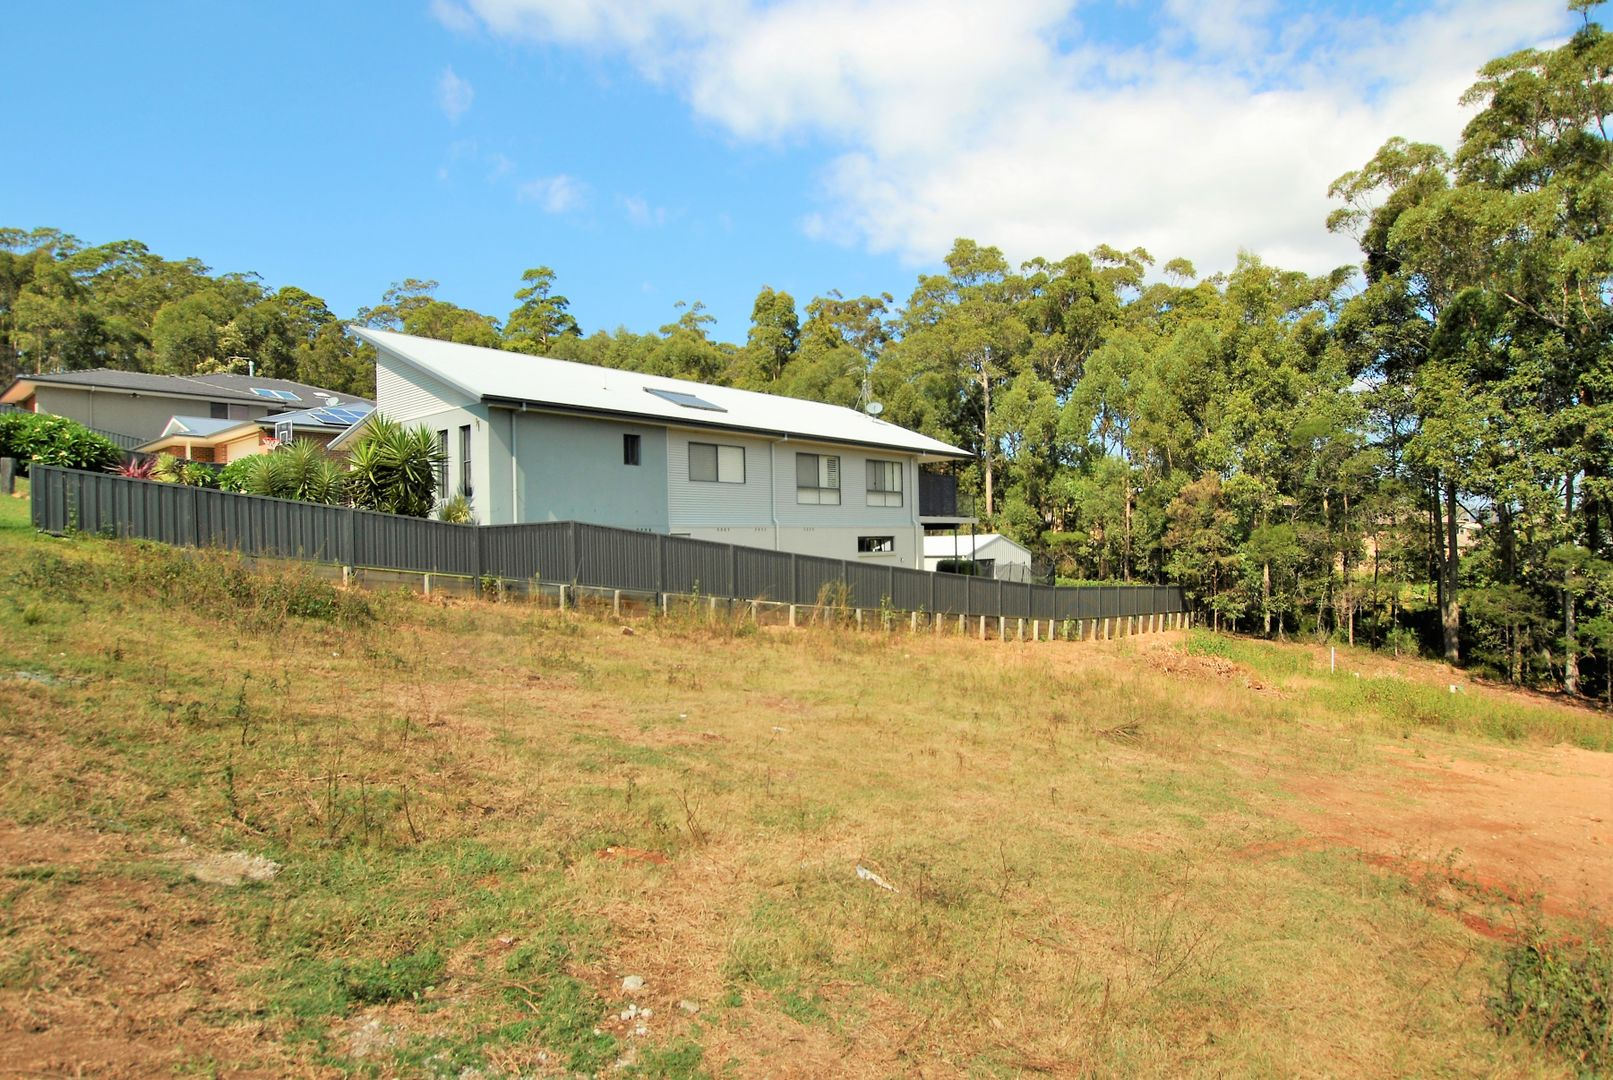 53 Broomfield Crescent, Long Beach NSW 2536, Image 1